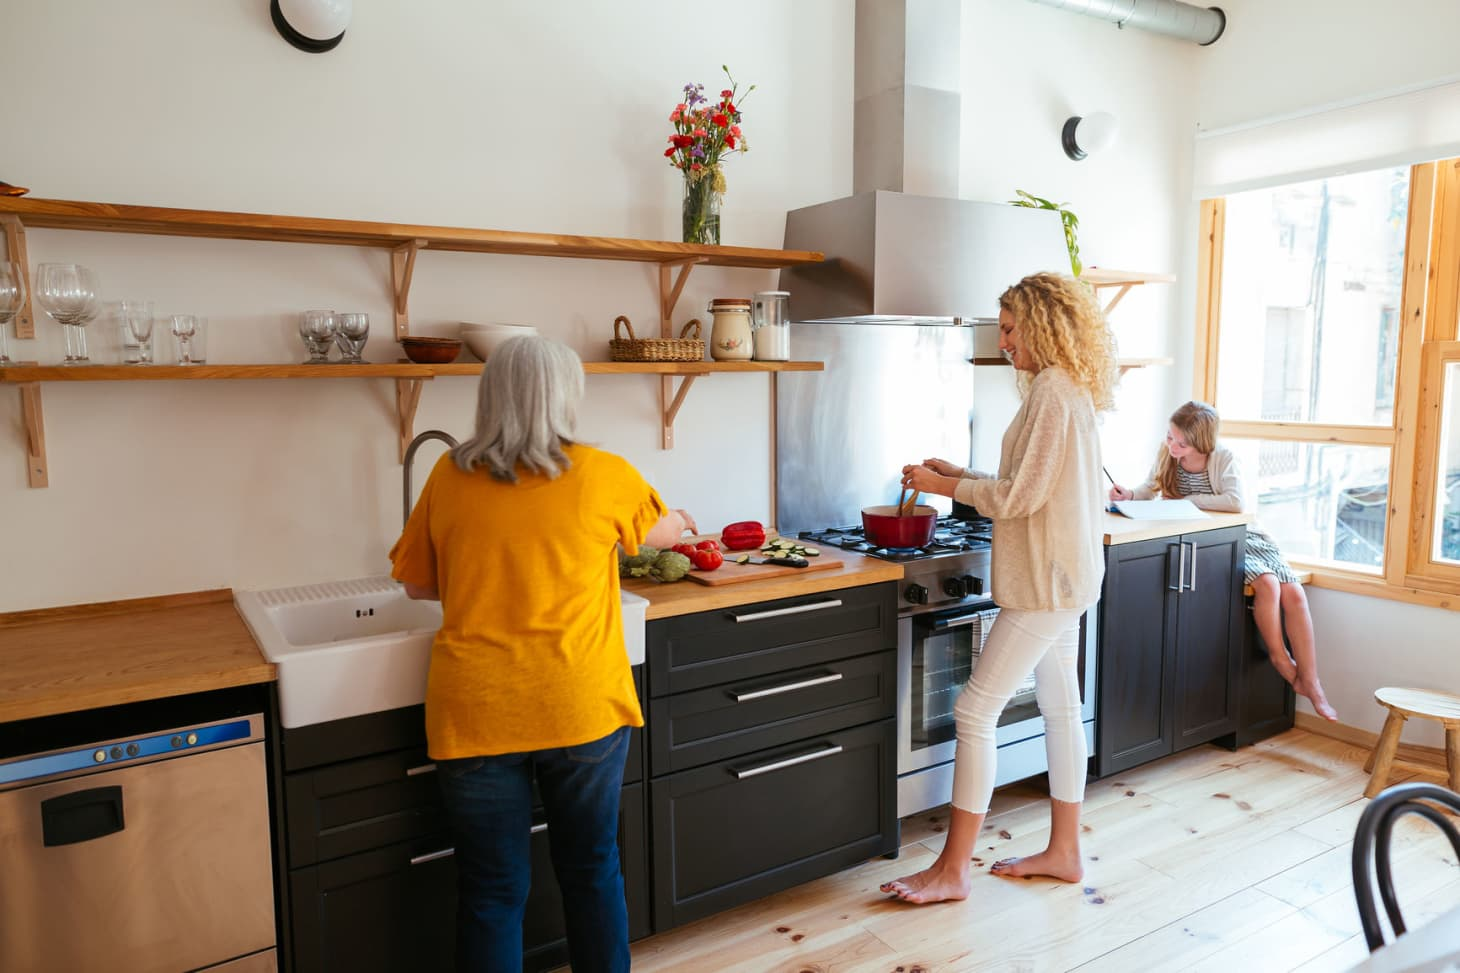 One Thing You Can Clean to Put Your Family's Tumultuous Year Behind You